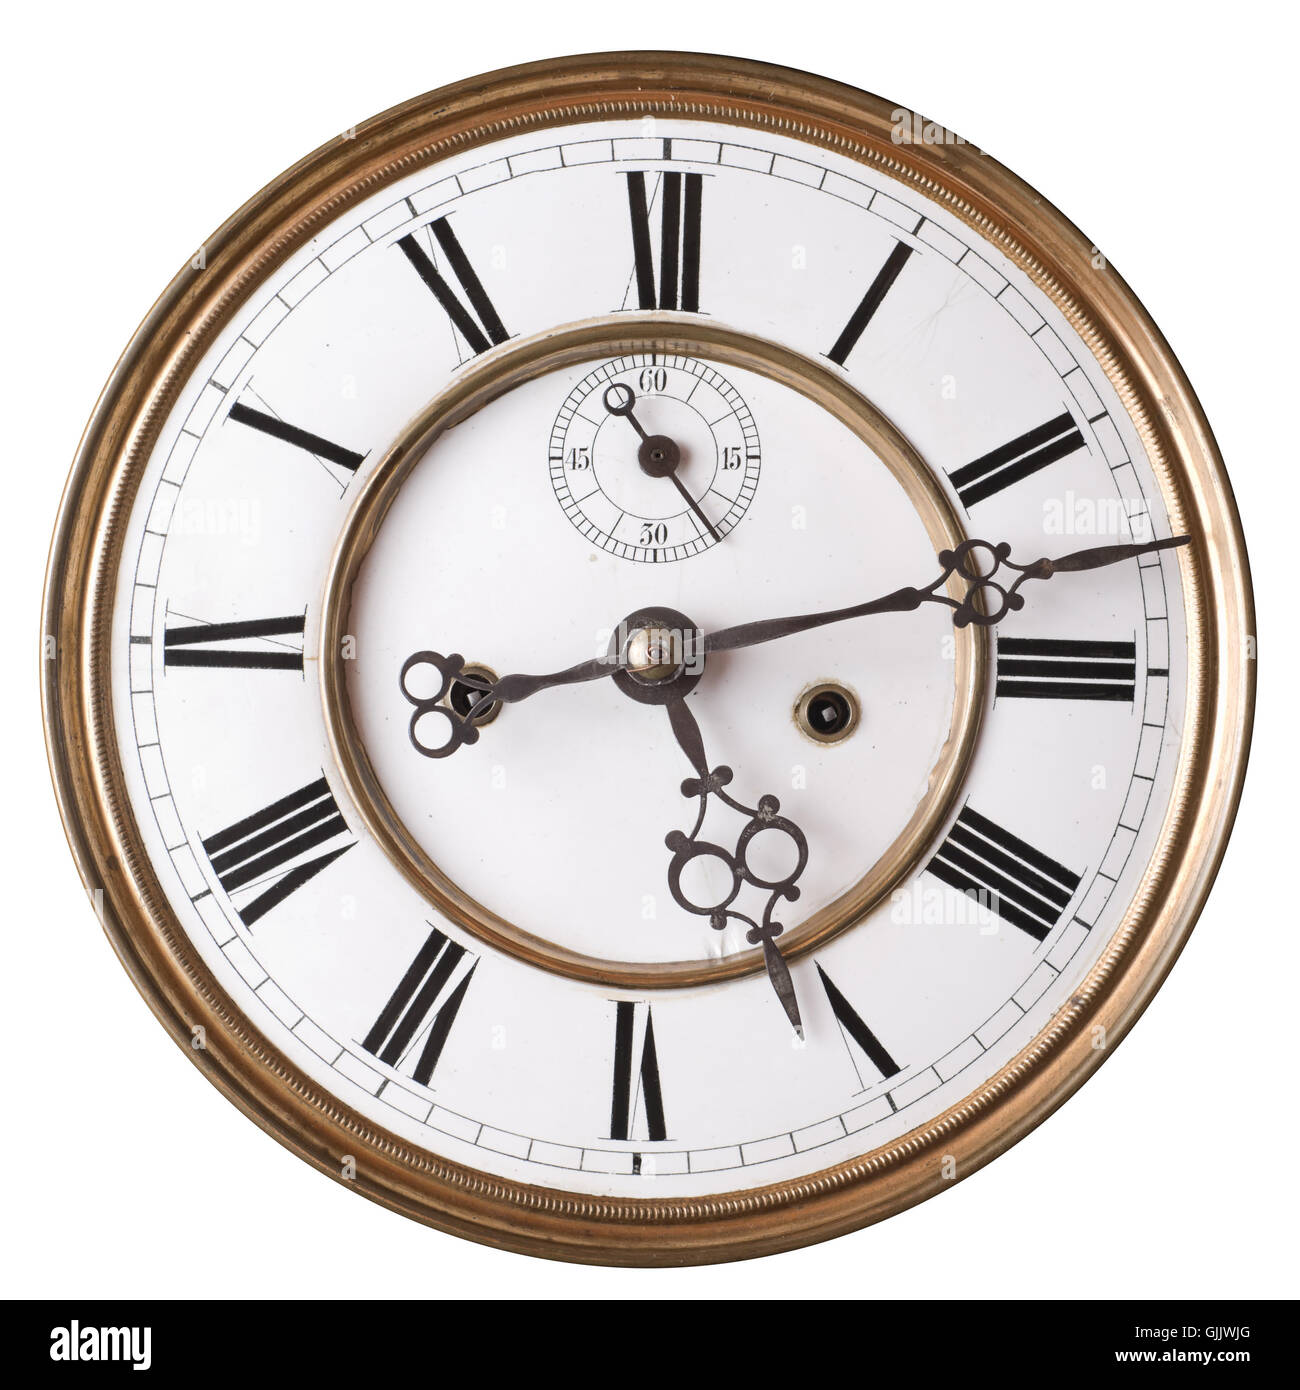 antique face clock - Stock Image